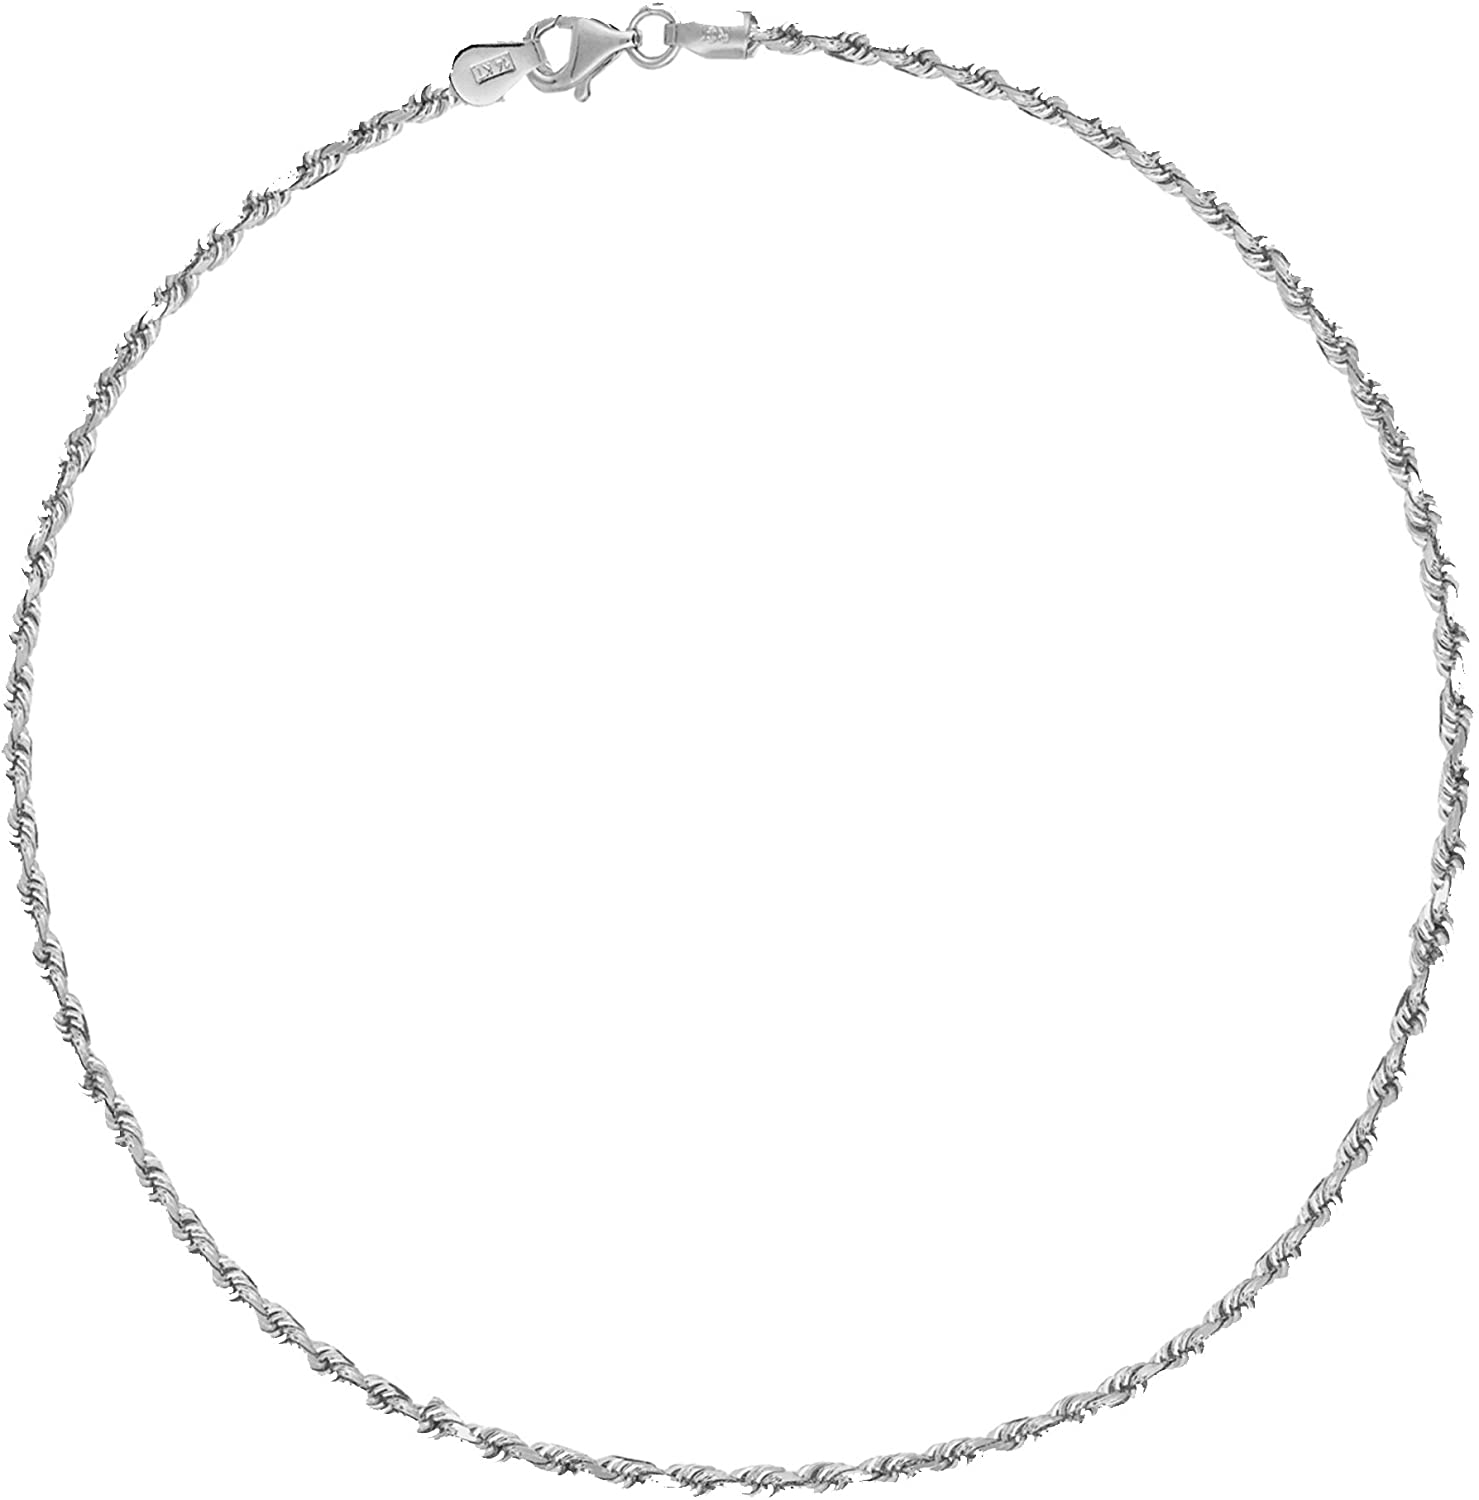 Ritastephens Sterling Silver Italian 1.8mm Rope Link Lobster-Lock Chain Anklet or Bracelet